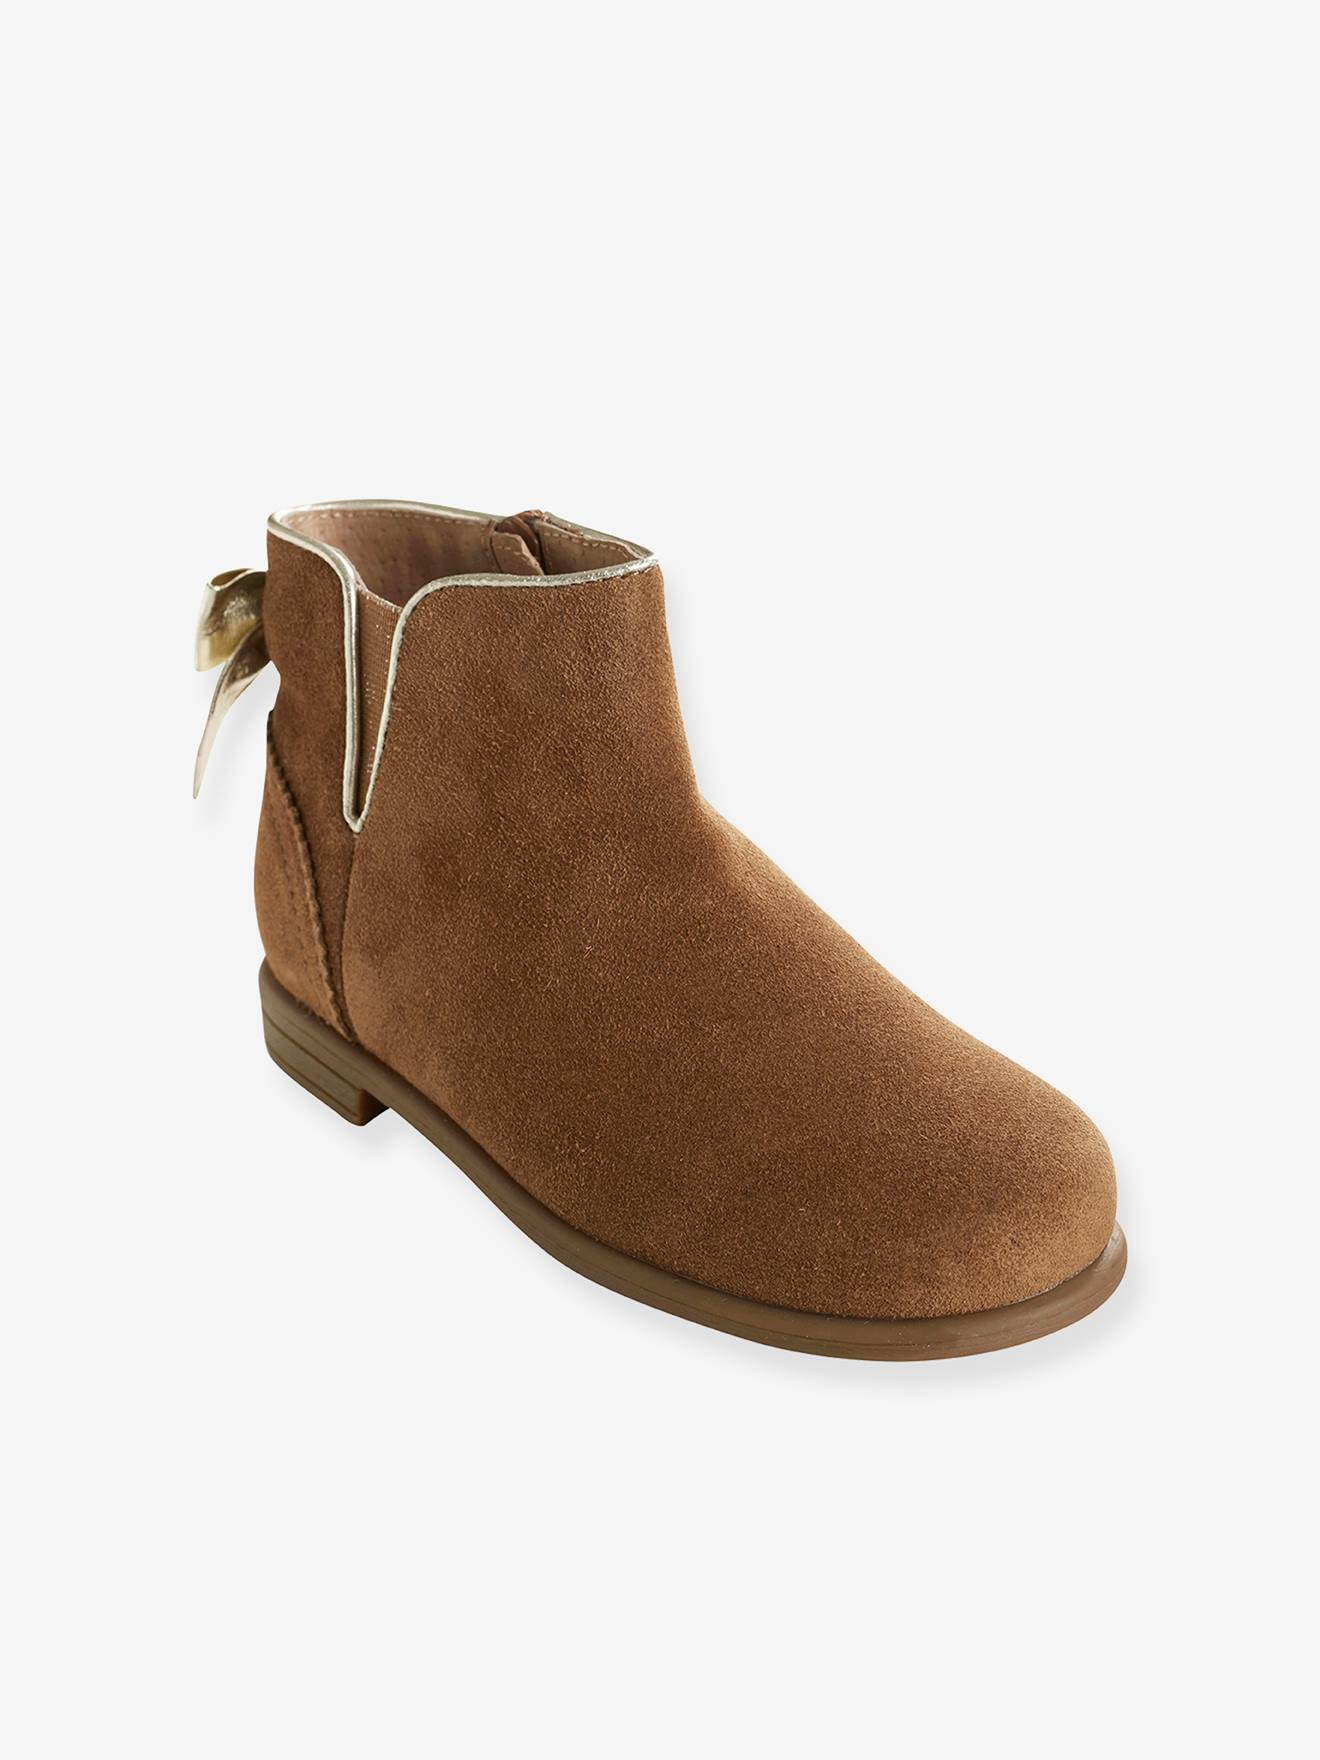 cuir Vertbaudet Boots caramel fille Boots cuir Boots fille fille caramel caramel cuir Vertbaudet nwkO80PX